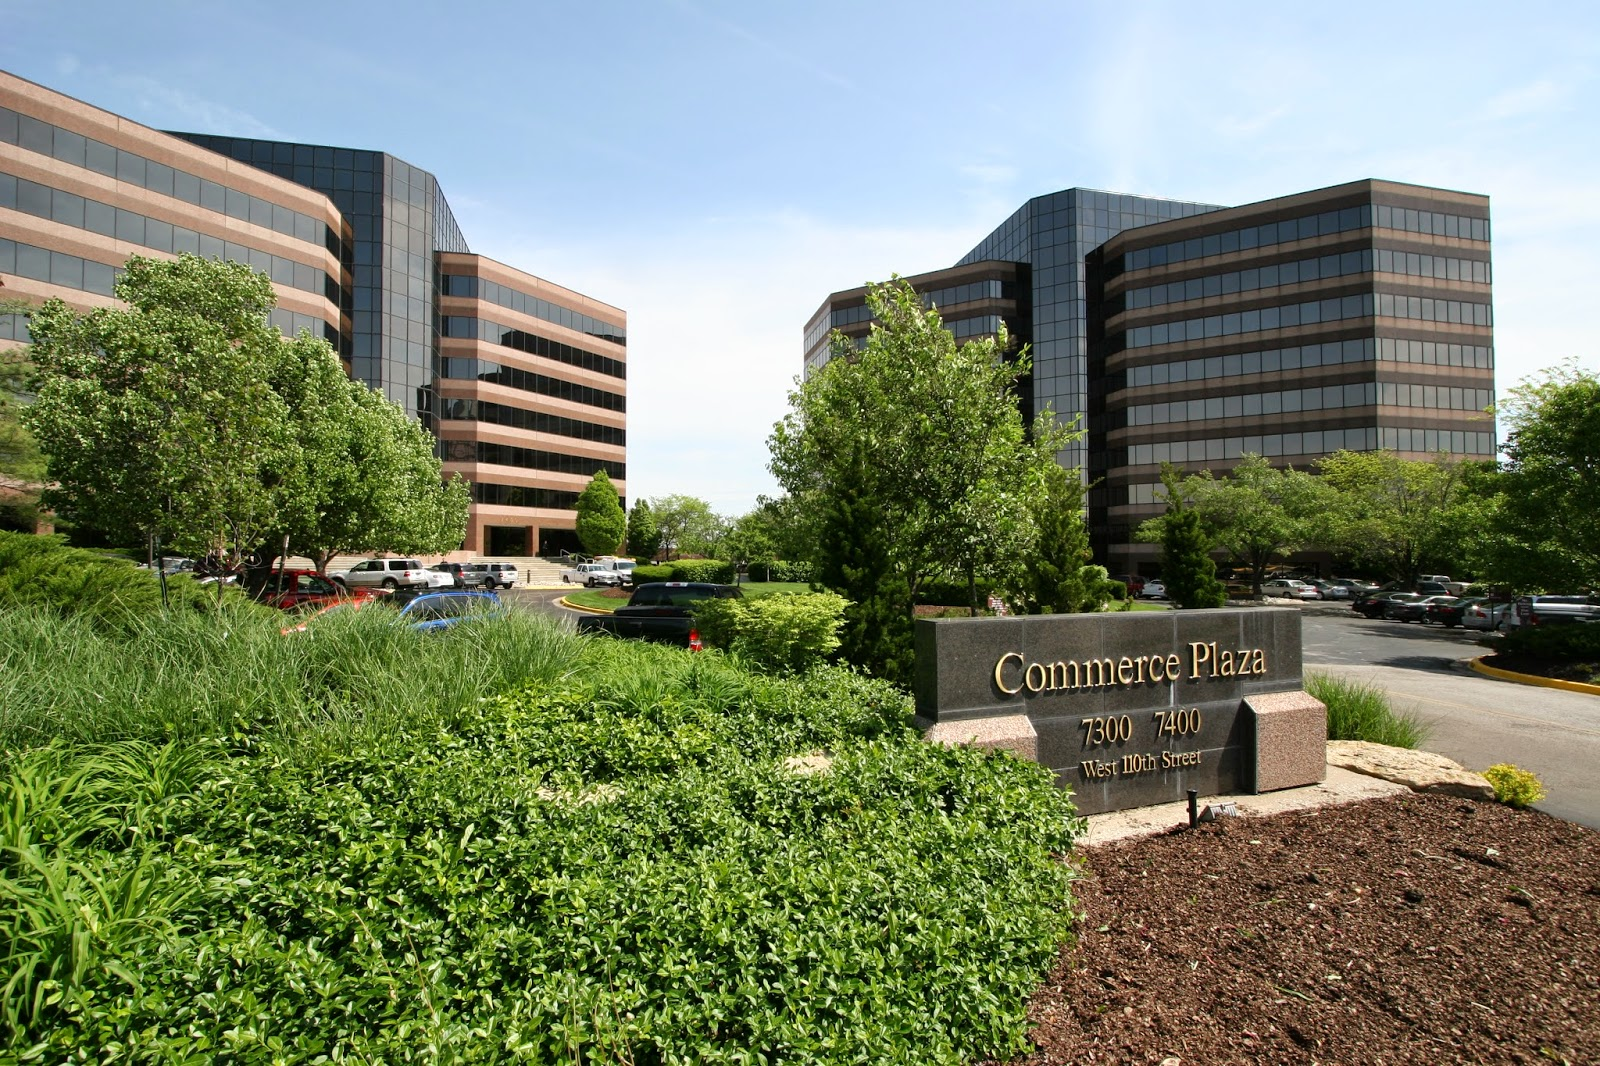 Commerce Plaza Overland Park, Kansas